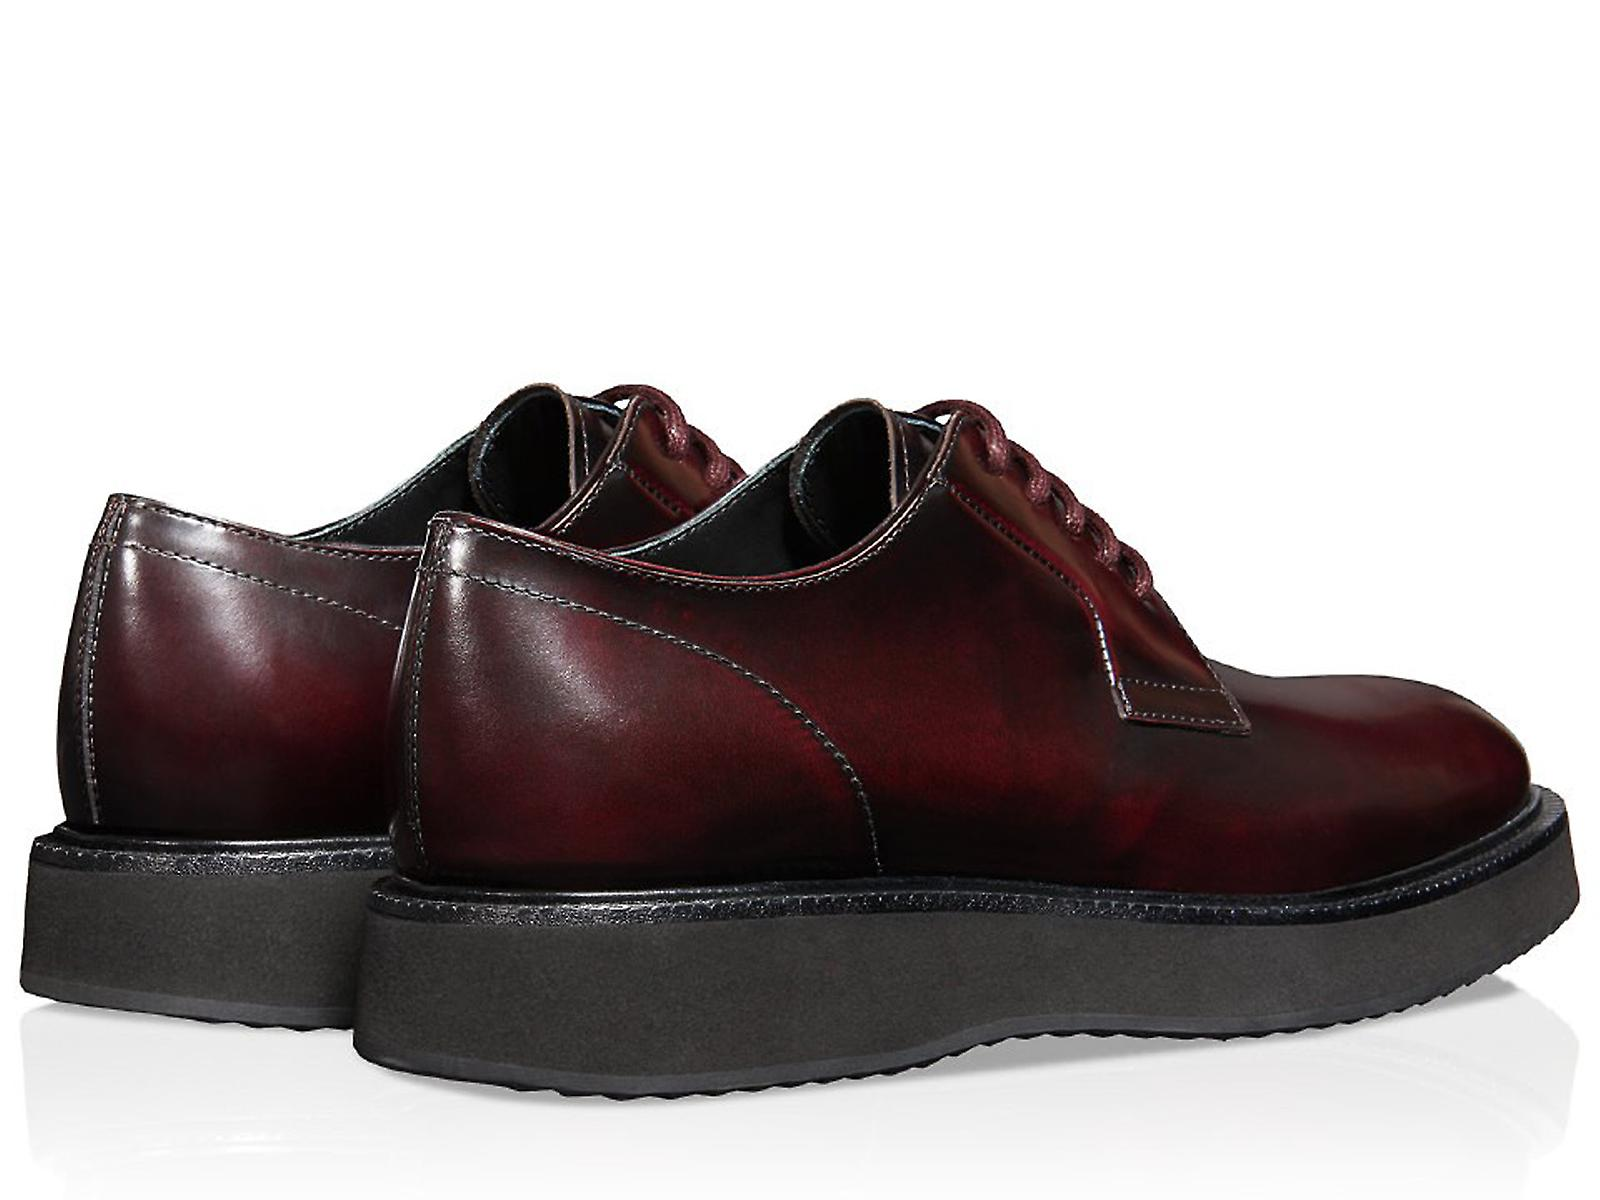 lace leather ups burgundy X Route in H271 Hogan xqP7Tw1P